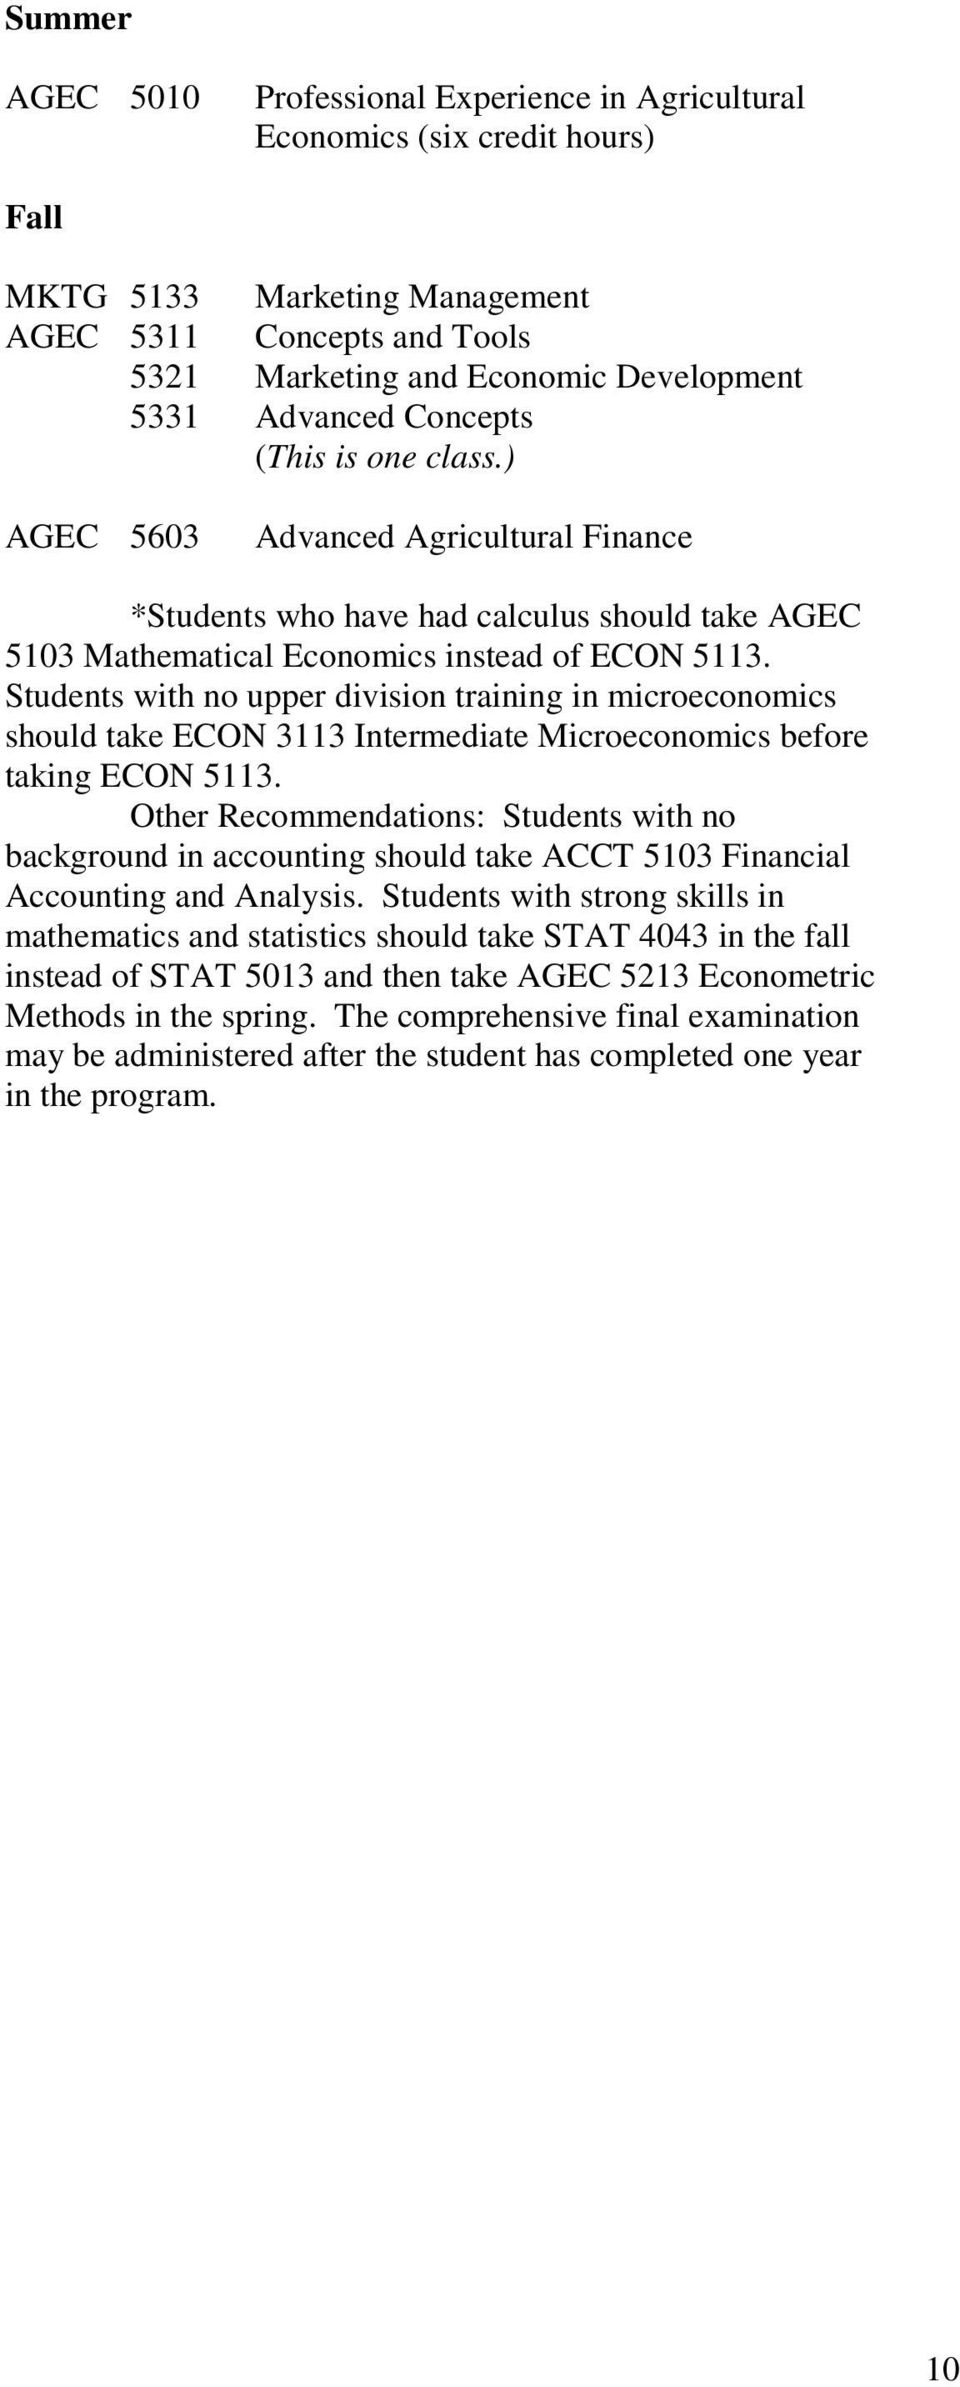 Students with no upper division training in microeconomics should take ECON 3113 Intermediate Microeconomics before taking ECON 5113.